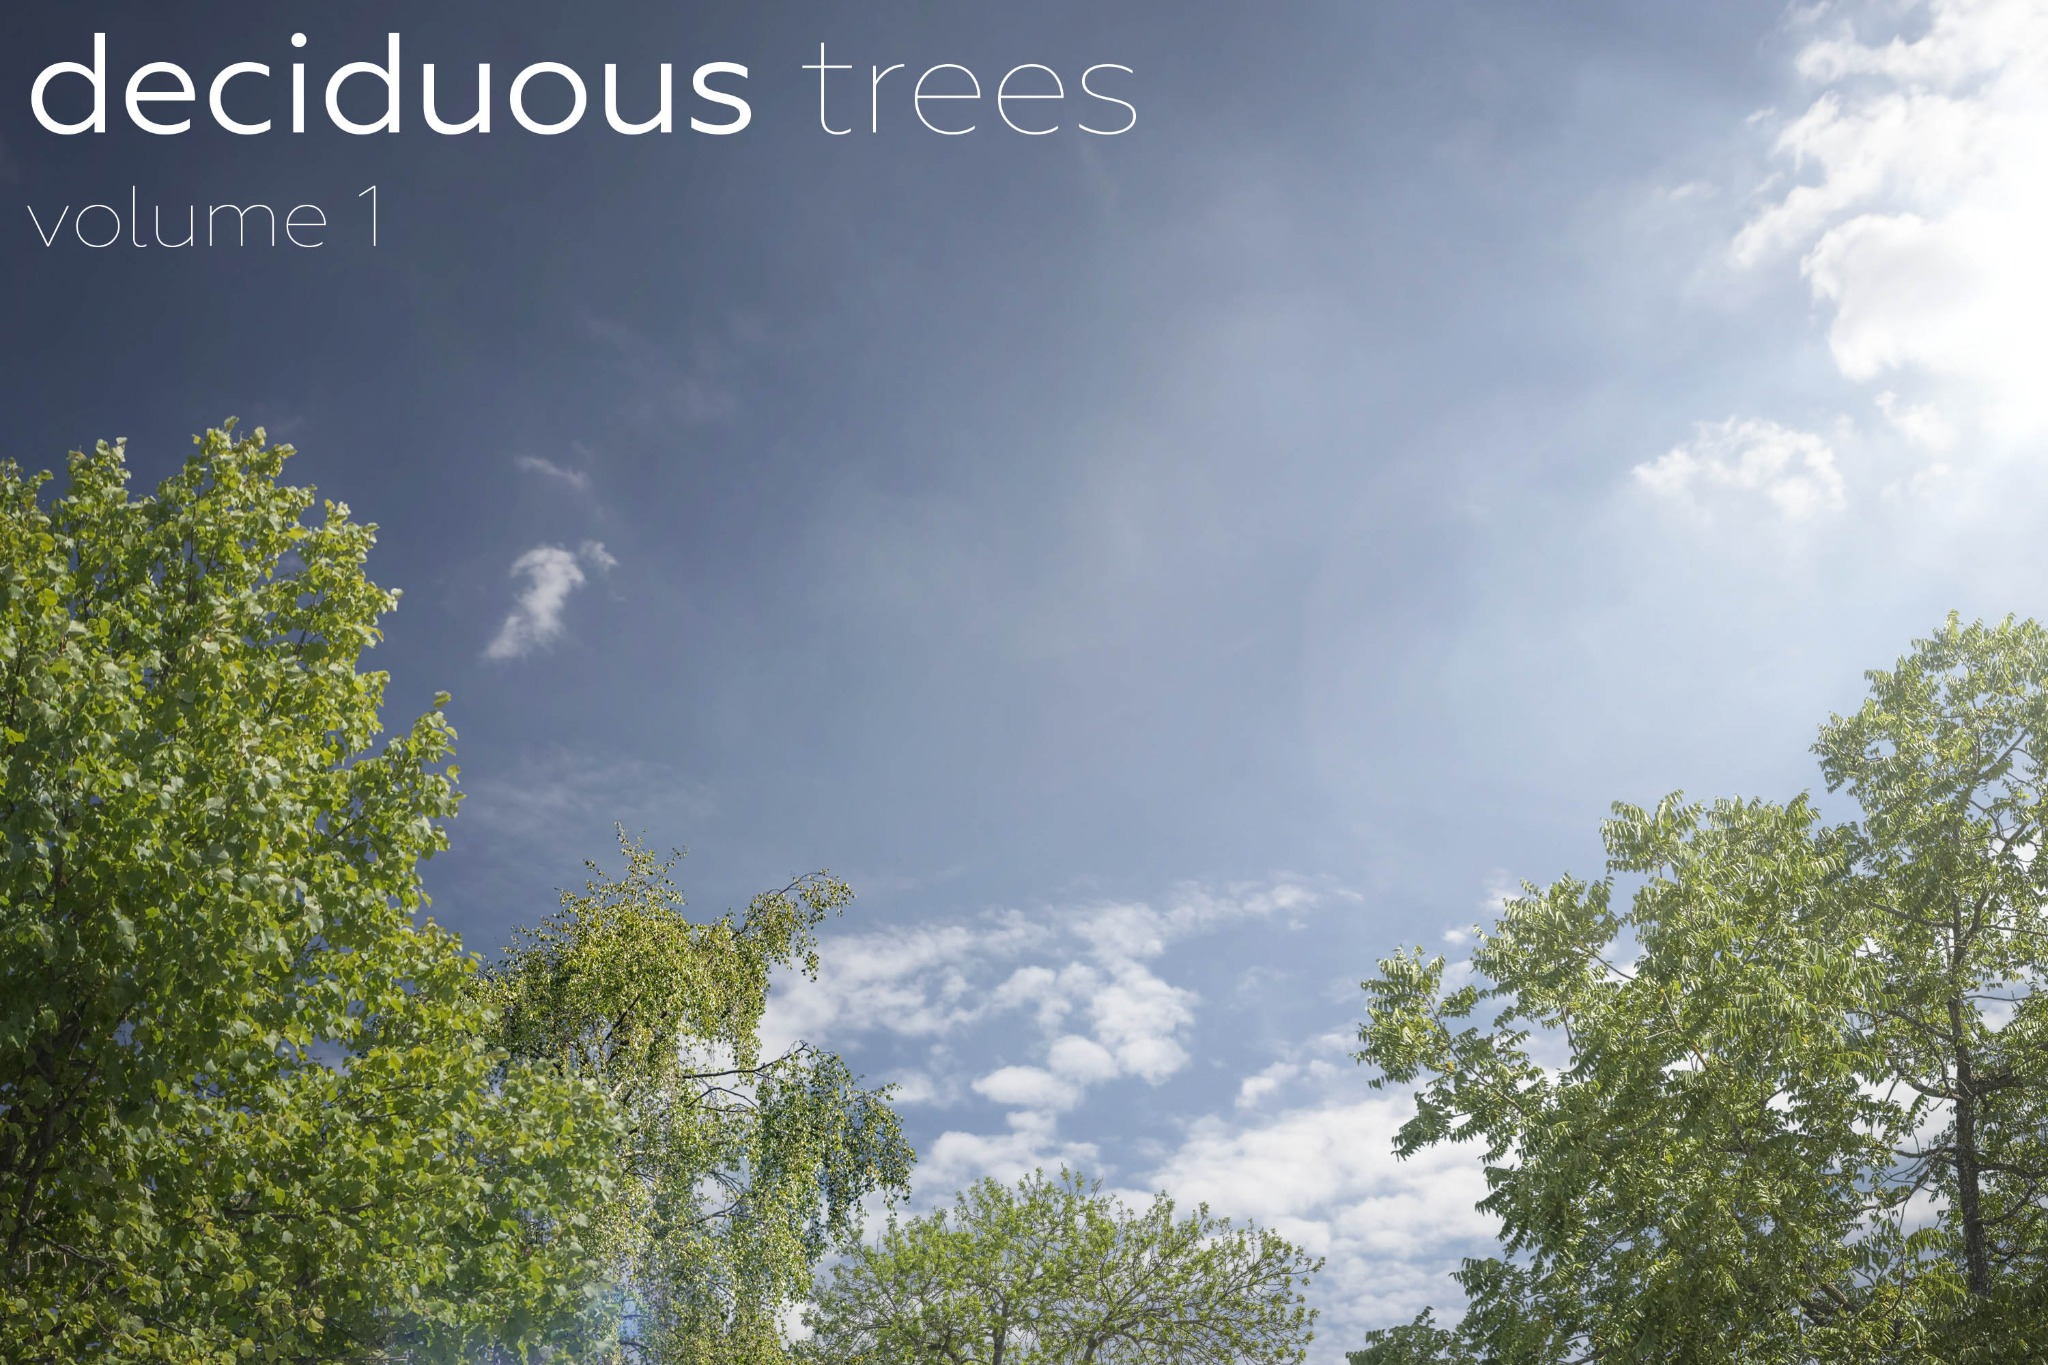 DECIDUOUS TREES Volume 1